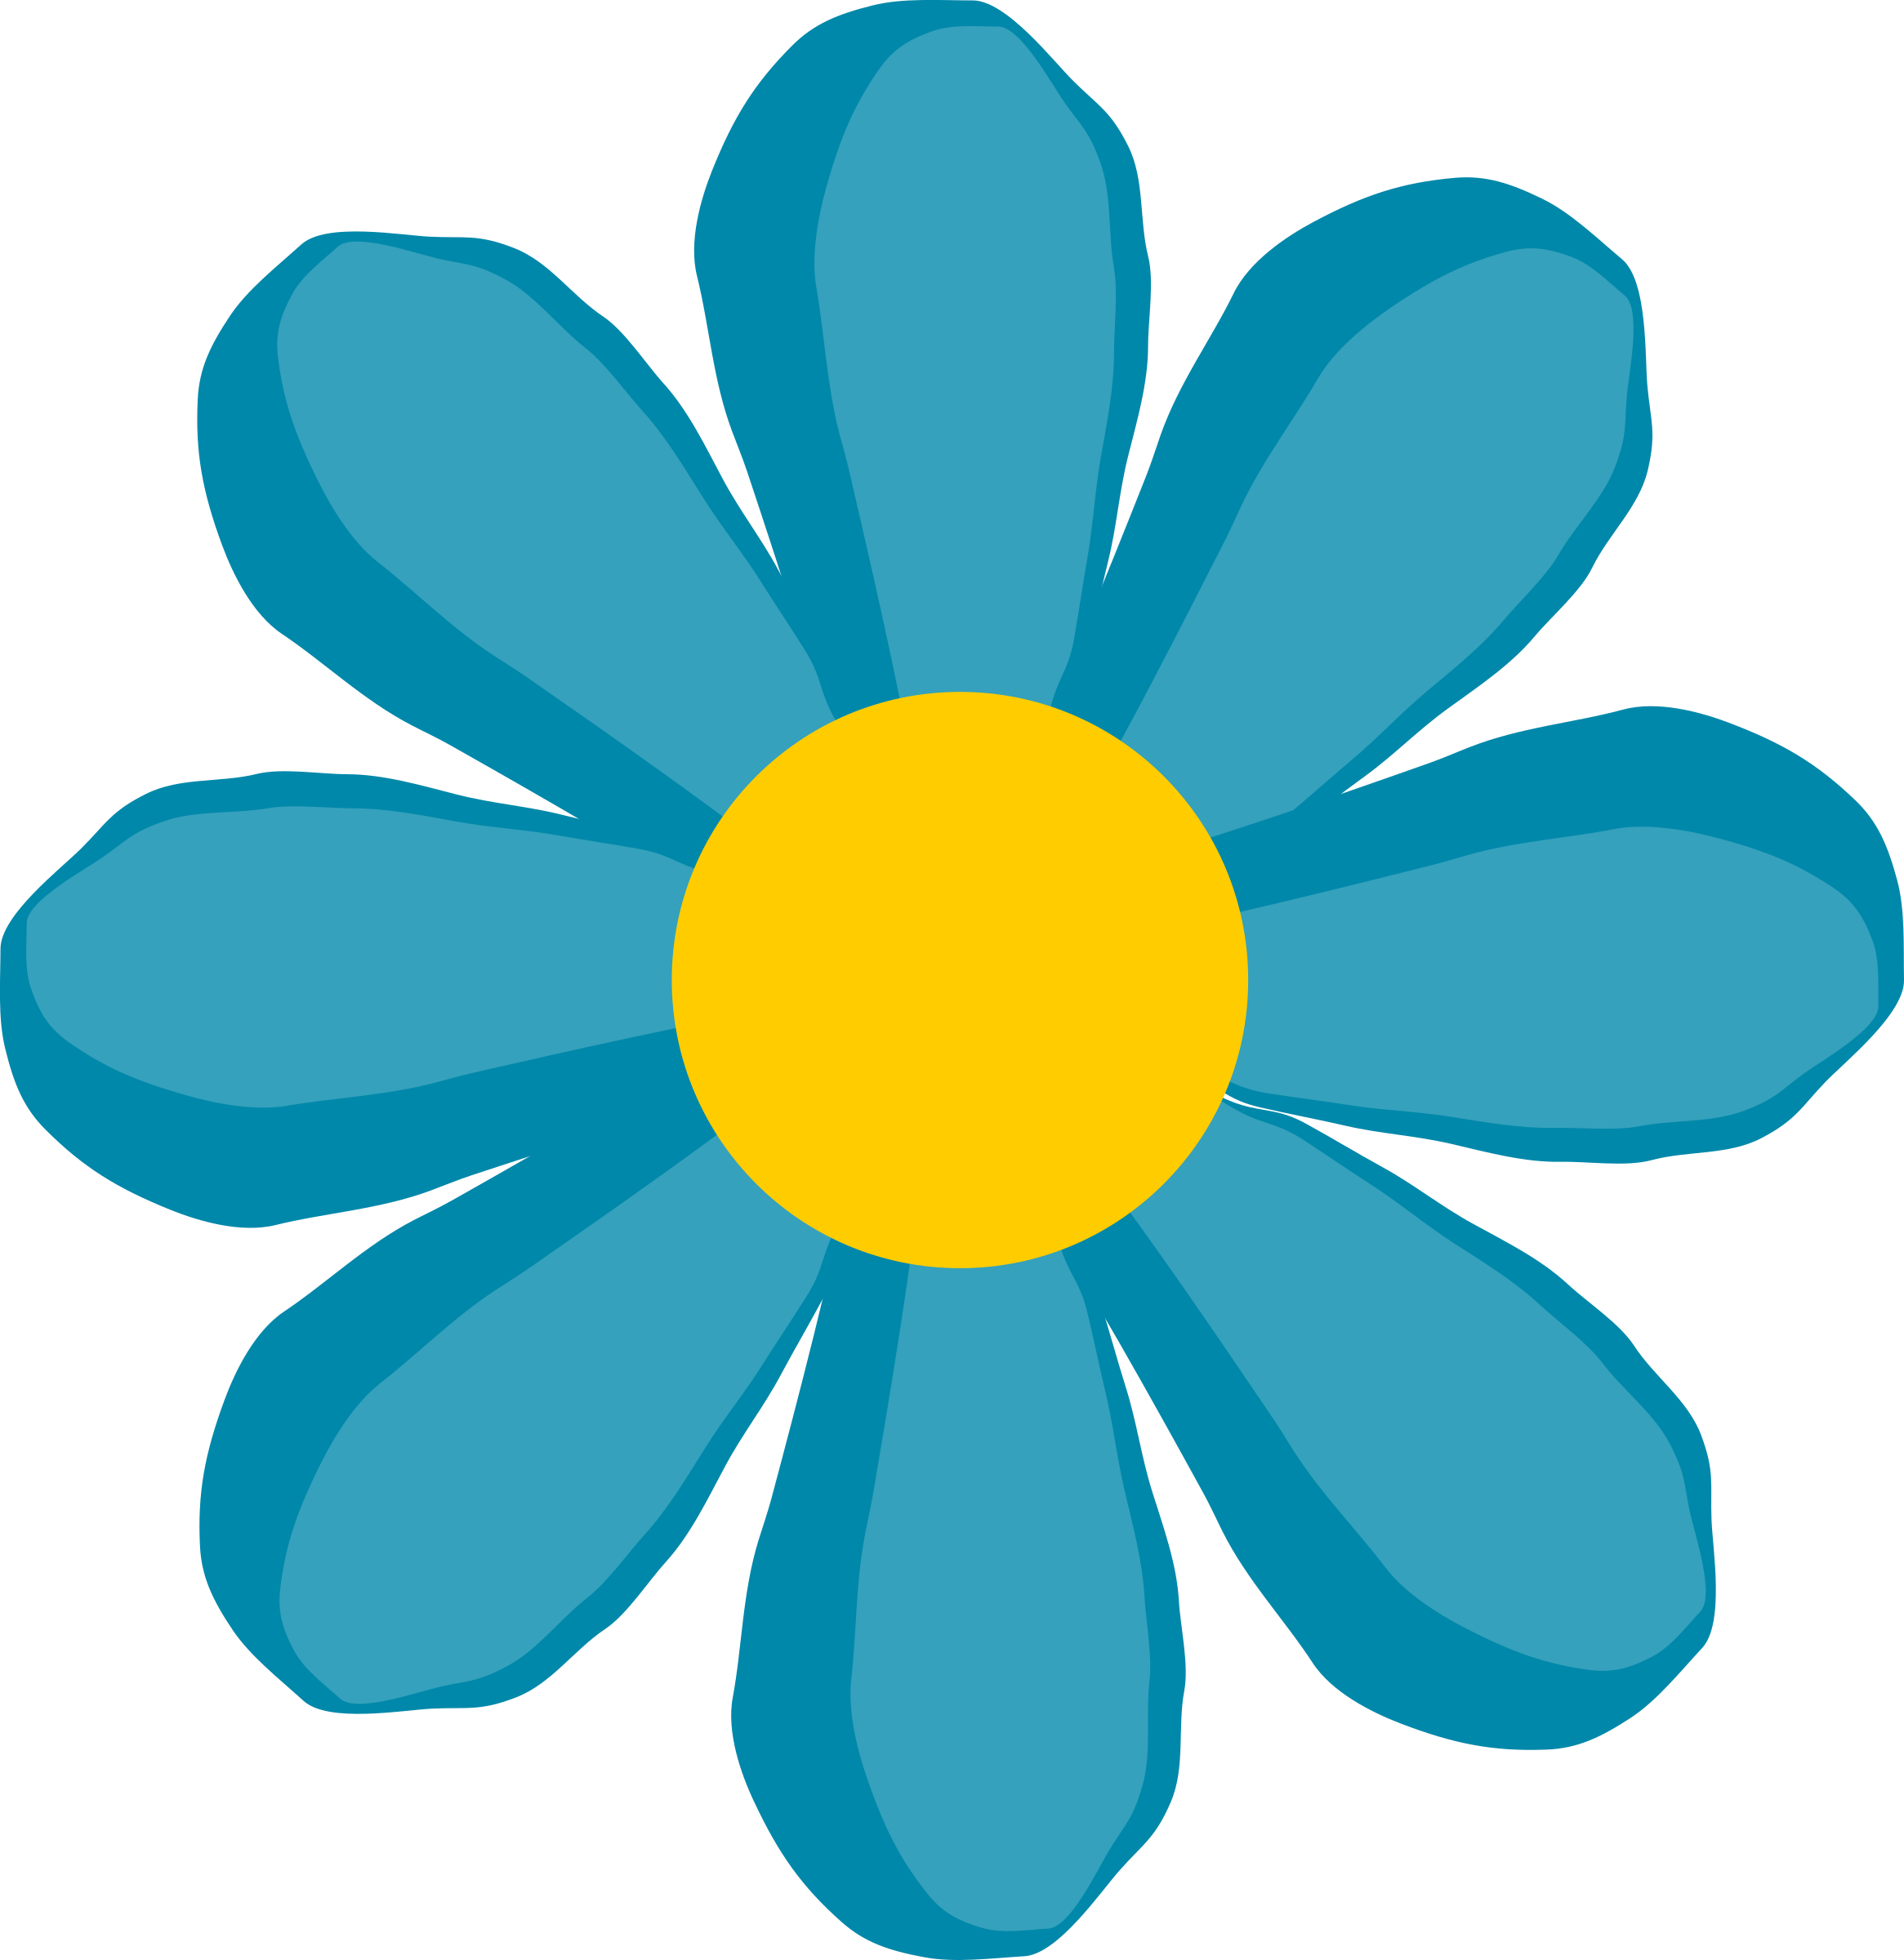 Blue and yellow flower clipart royalty free Clipart - Blue flower royalty free